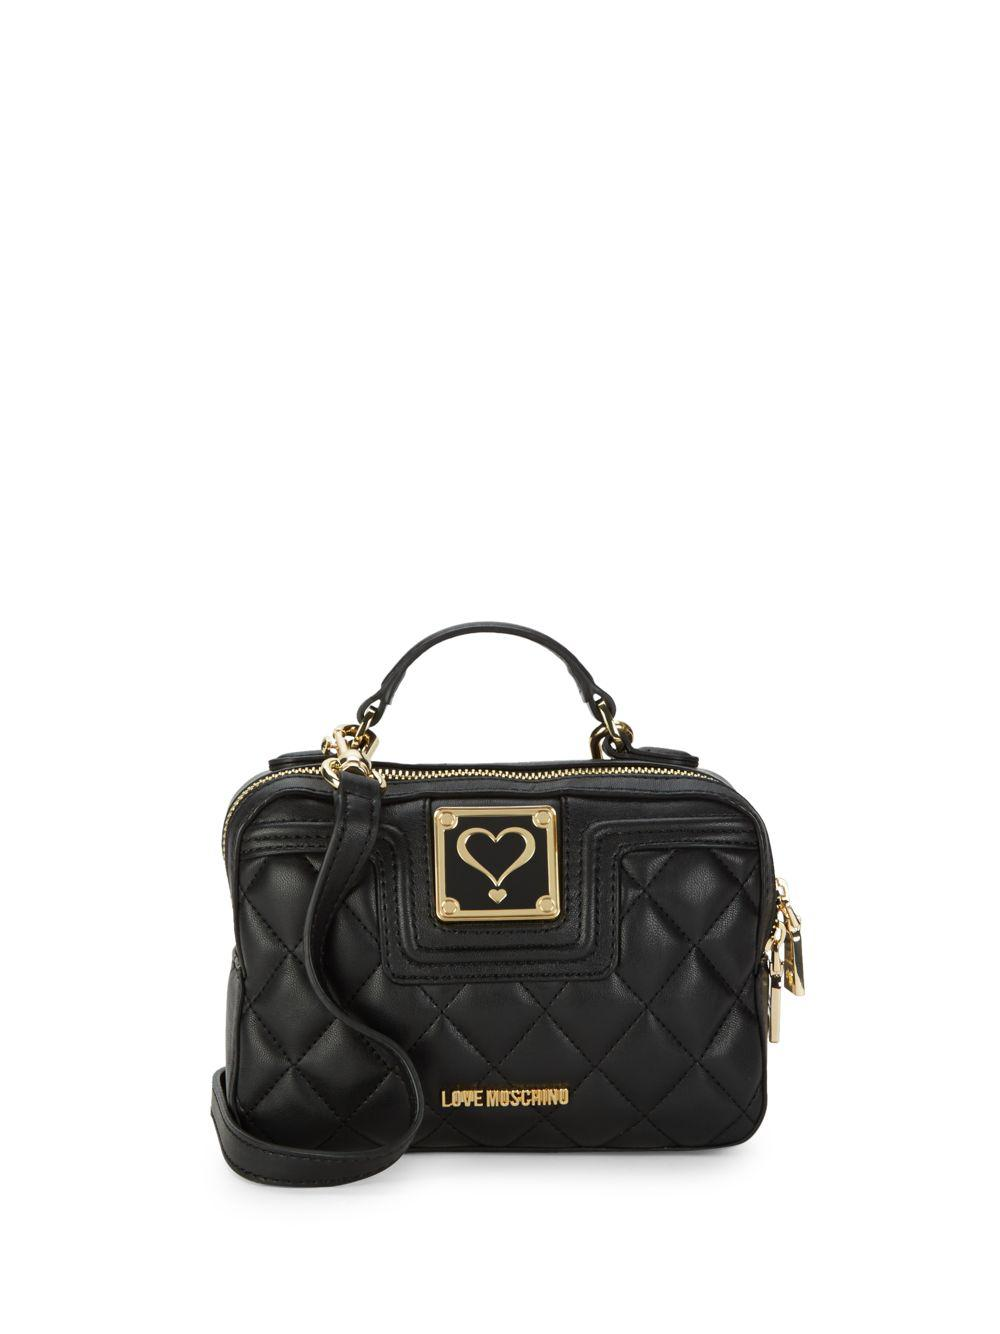 47259083c69 Love Moschino Quilted Mini Top Handle Bag in Black - Lyst